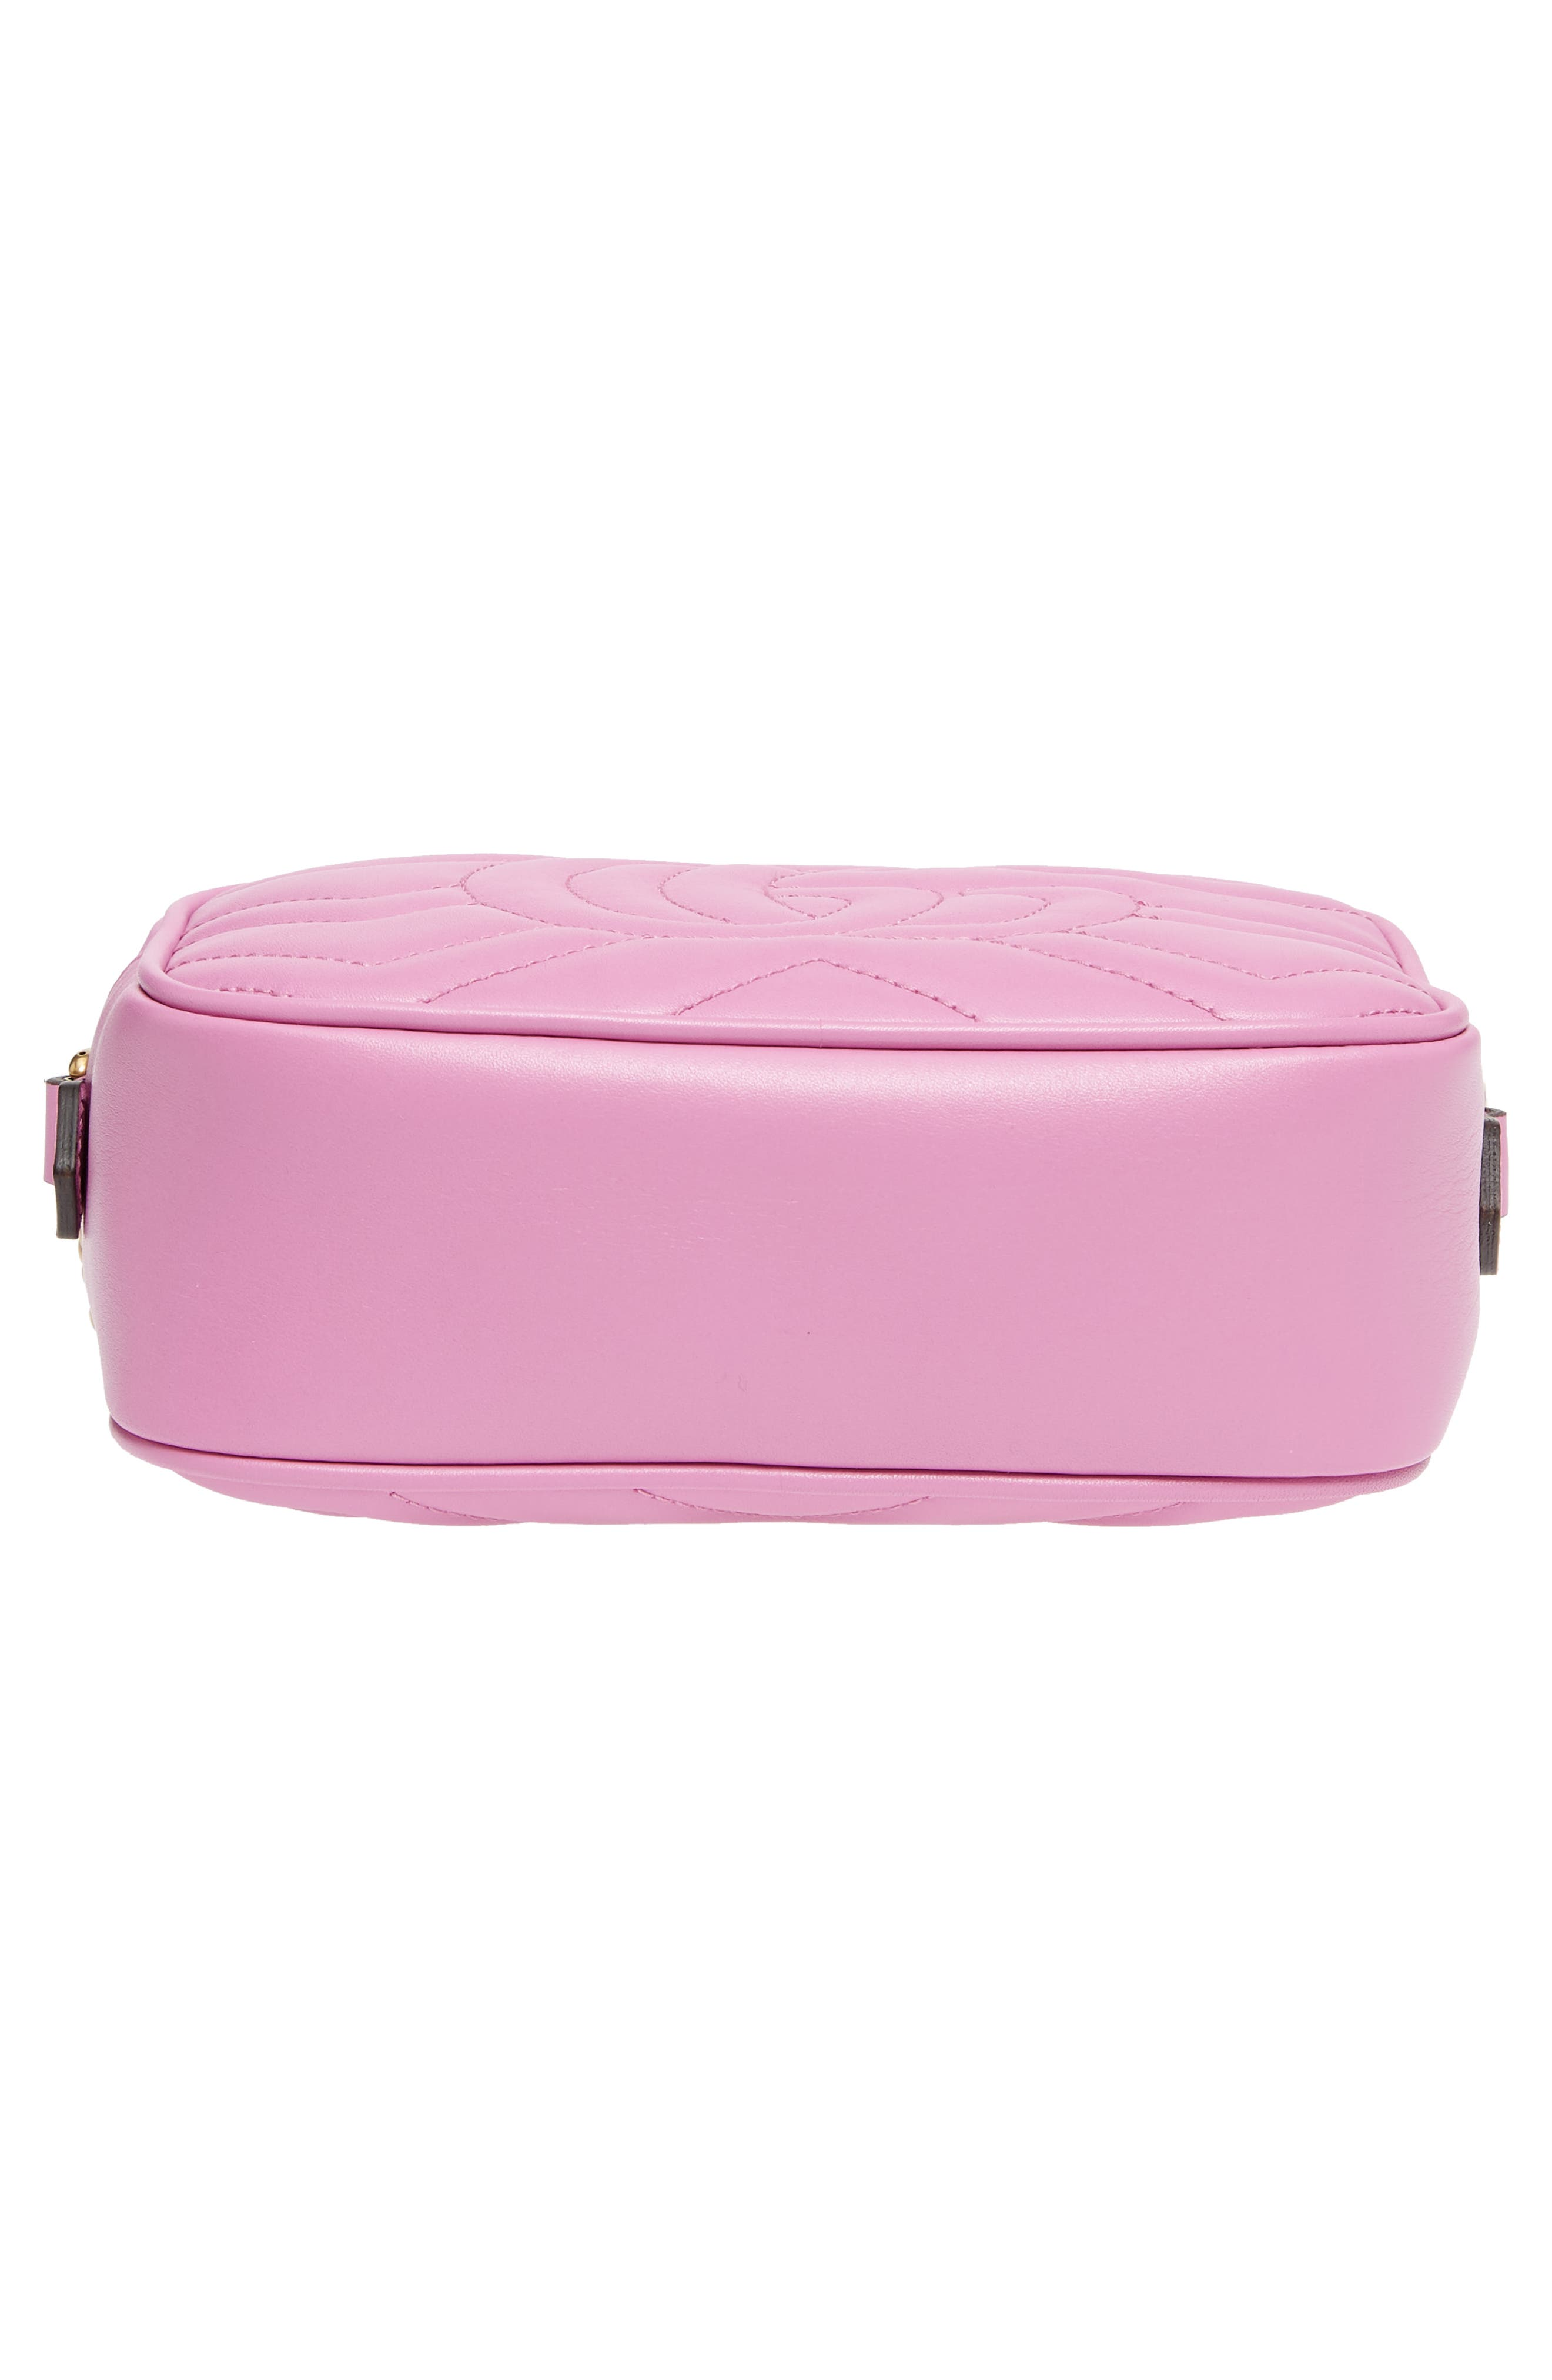 GG Marmont 2.0 Matelassé Leather Camera Bag,                             Alternate thumbnail 6, color,                             Candy Mous